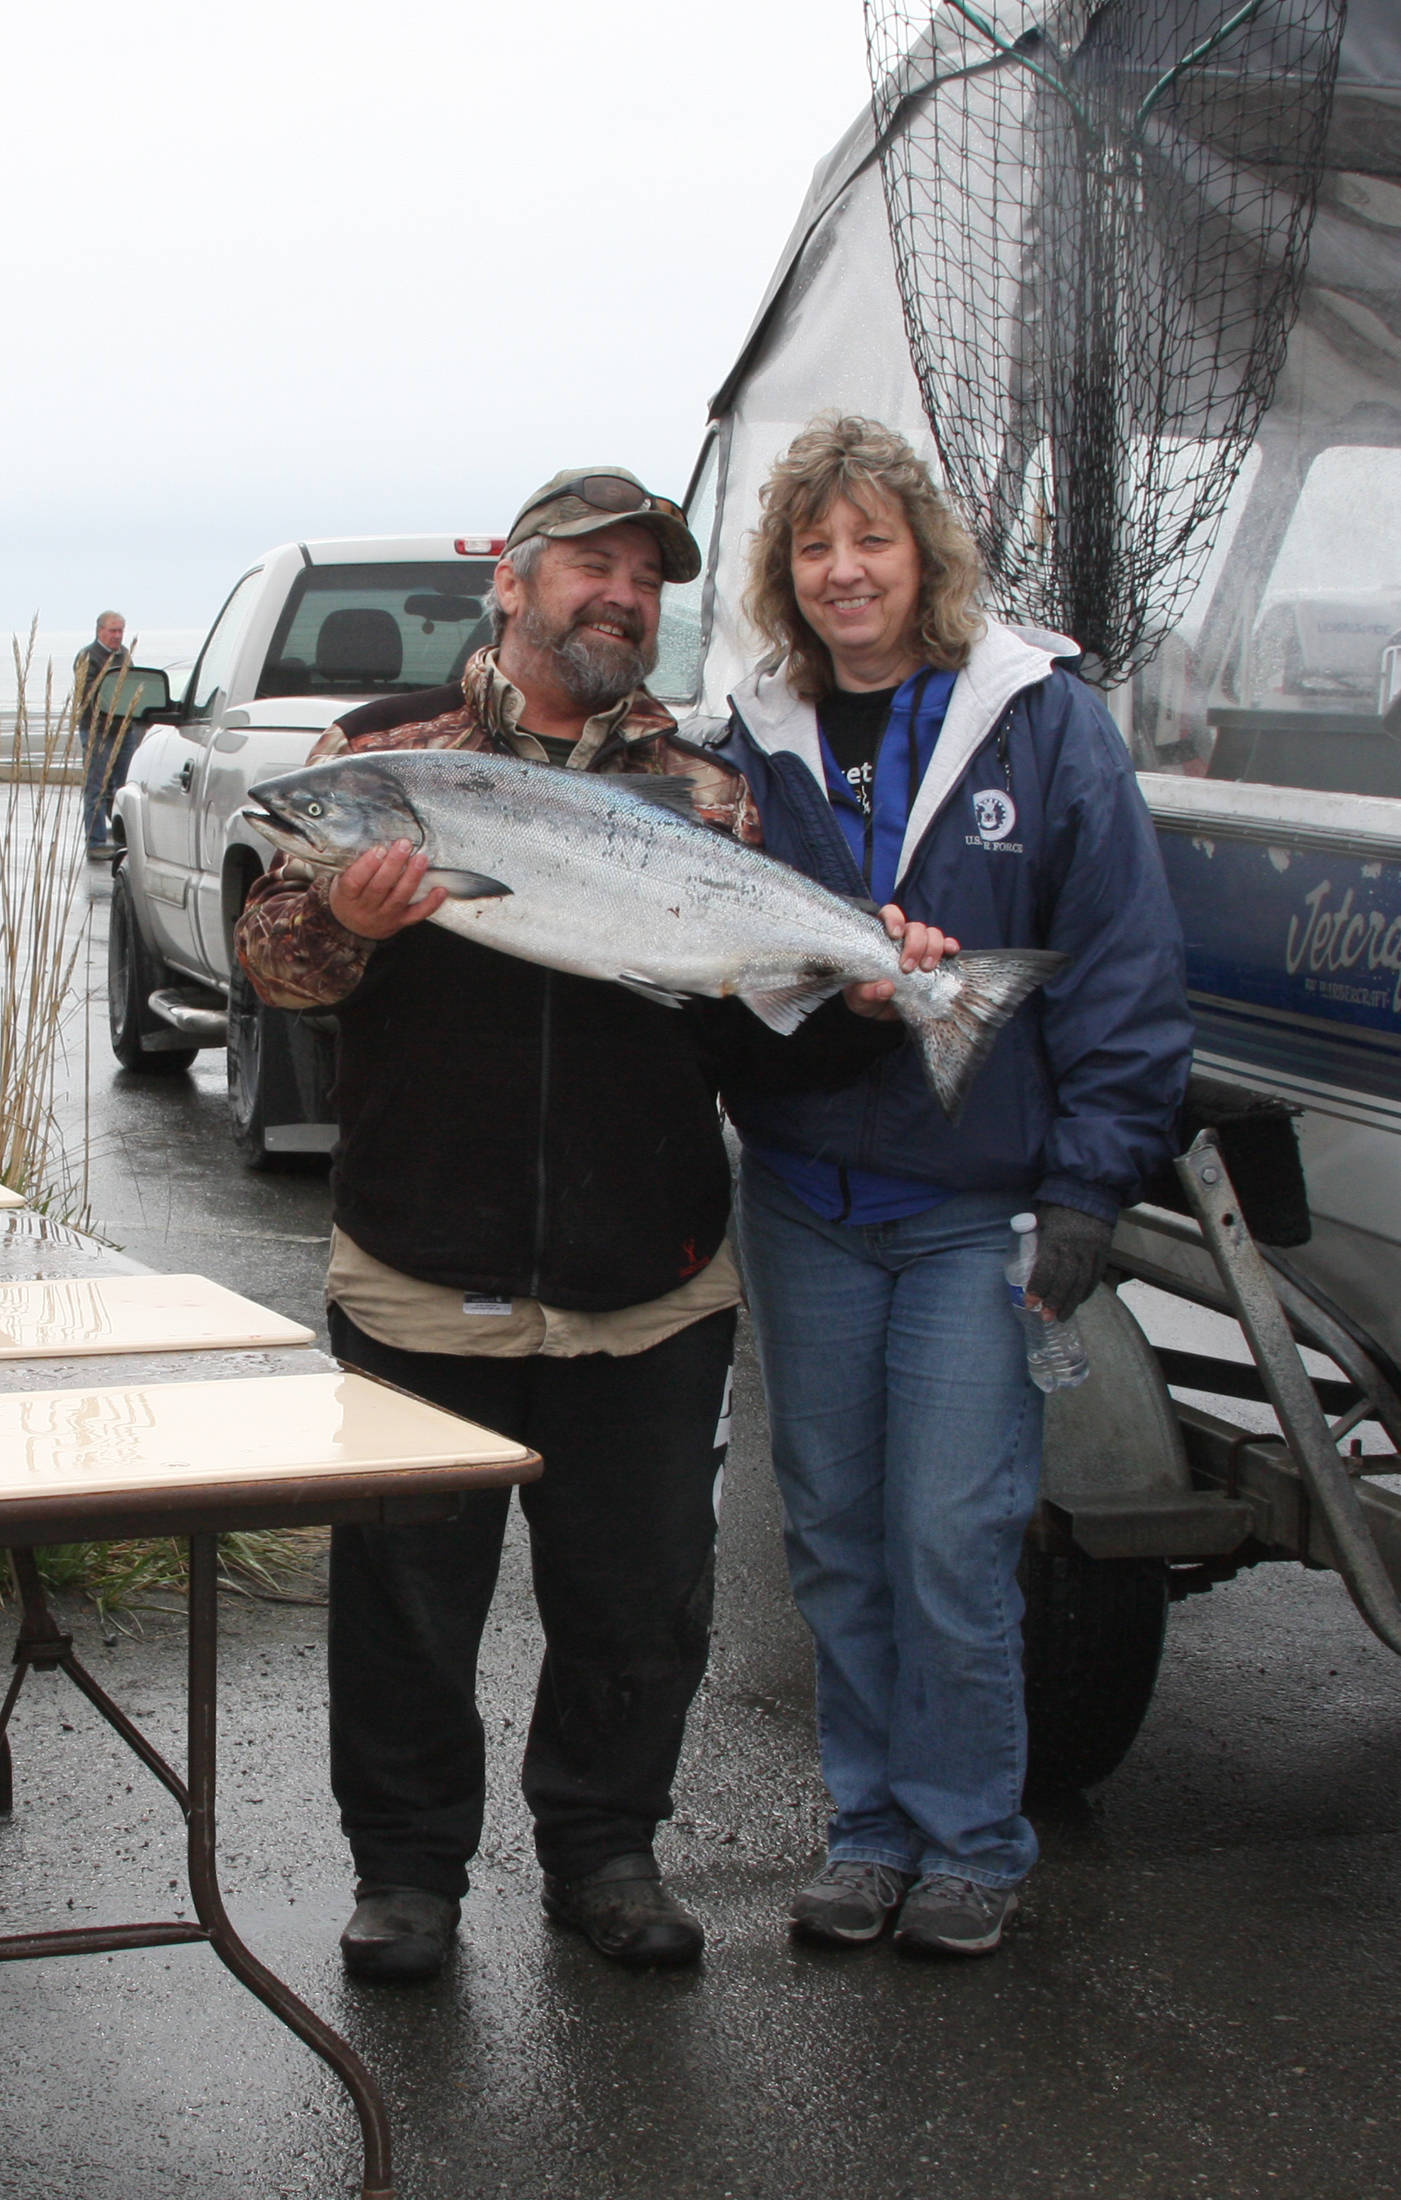 John and Yvonne Ketelle of Home pose with one of the two king salmon caught on their boat, Circus Circus, at the weigh-in station during the Anchor Point Calcutta on Sunday, May 12 in Anchor Point, Alaska. (Photo by Delcenia Cosman)